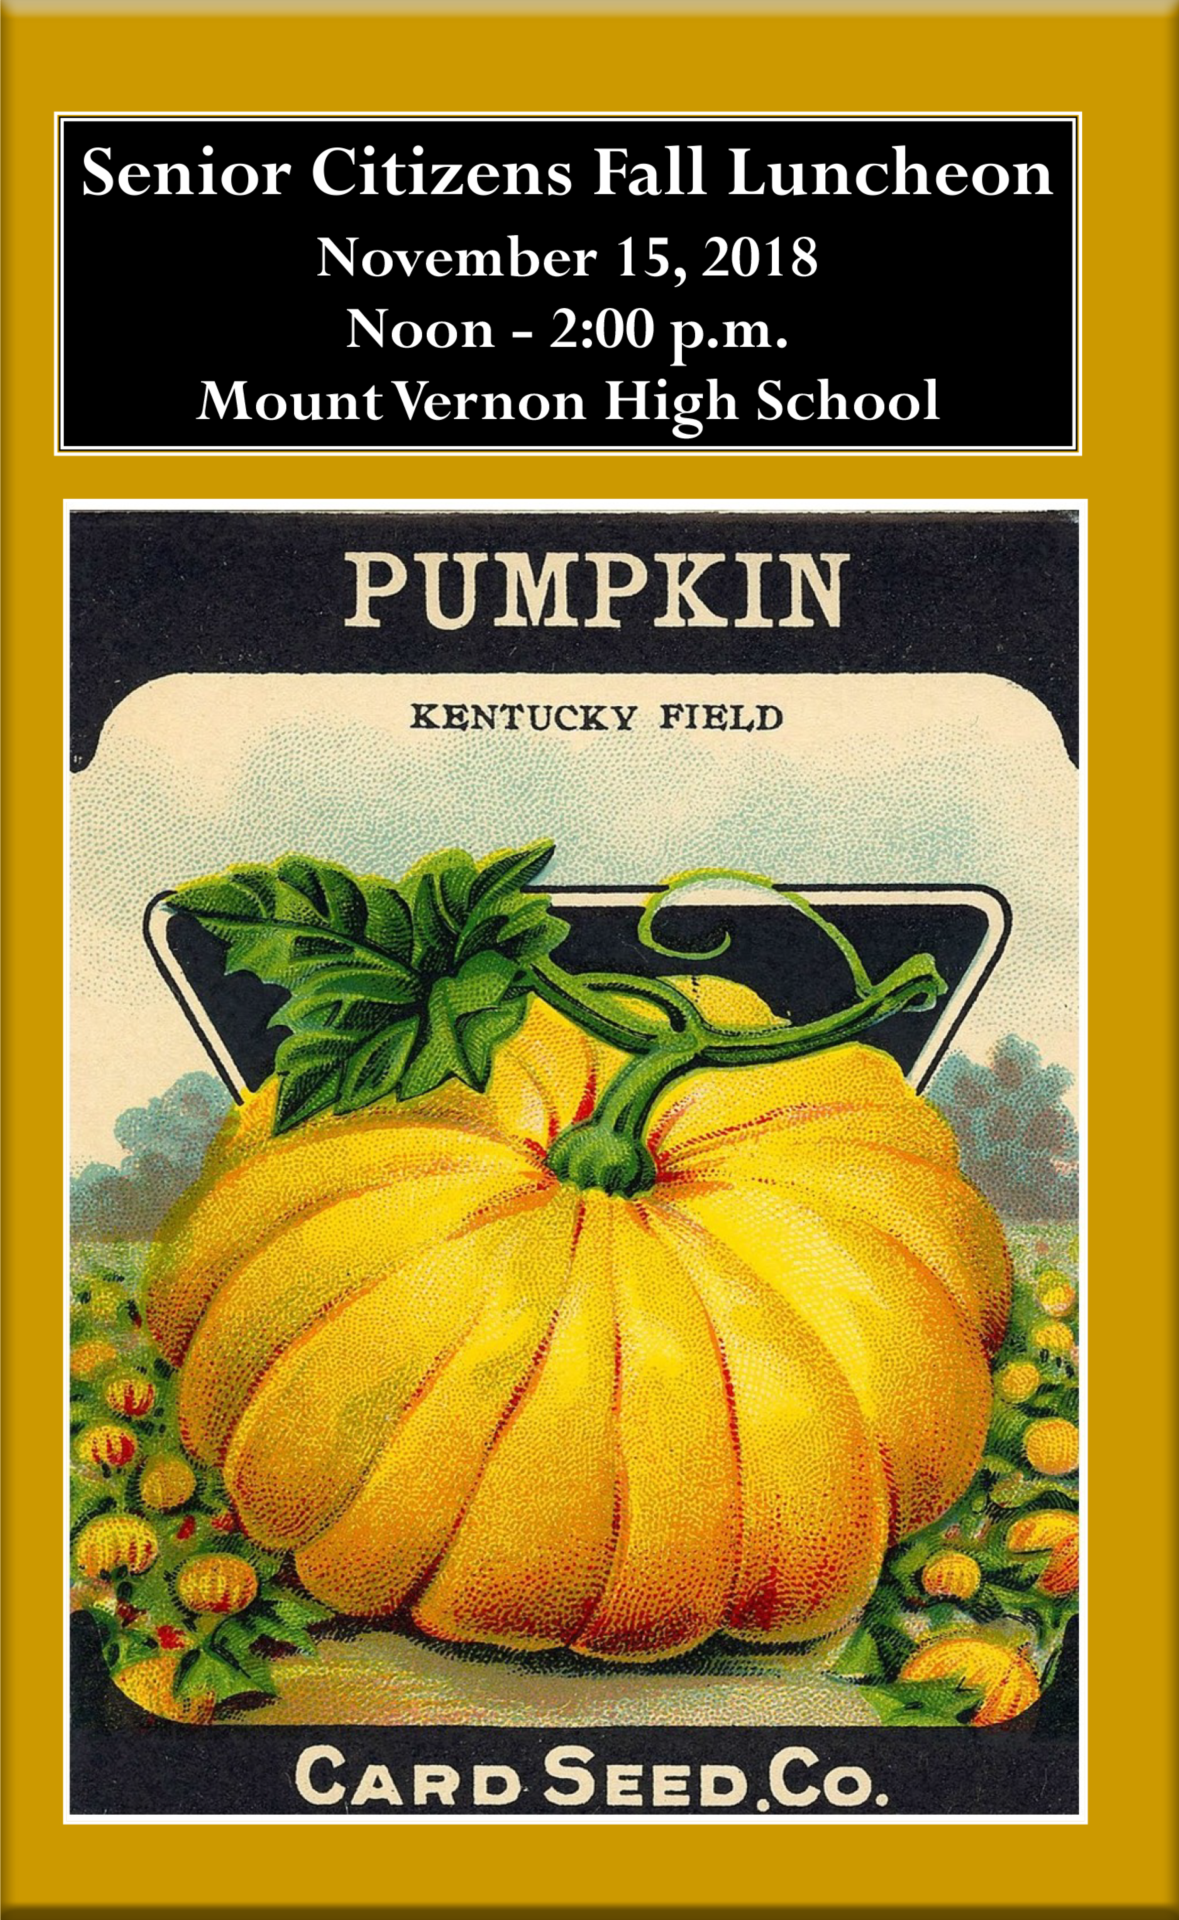 Senior Citizen luncheon poster with pumkin seed background.